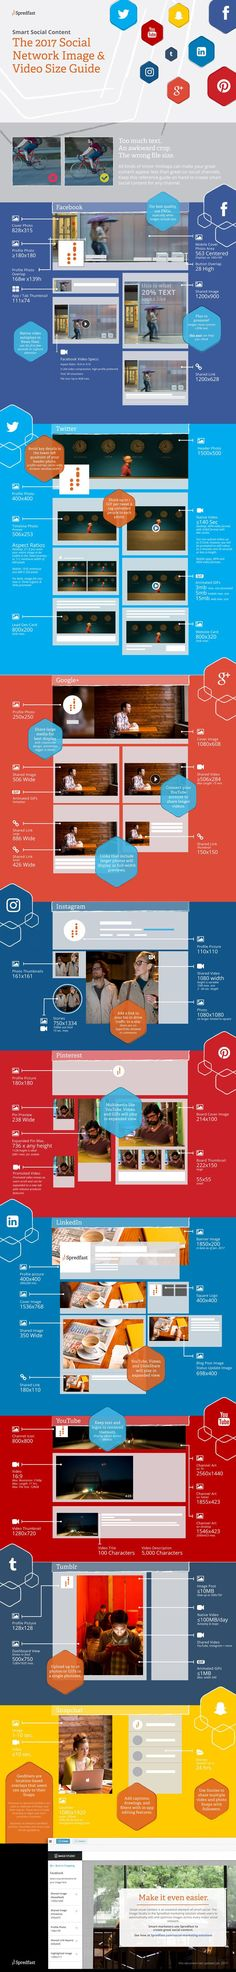 https://i.marketingprofs.com/assets/images/daily-chirp/170428-infographic-social-media-sizing-guide-full.jpg